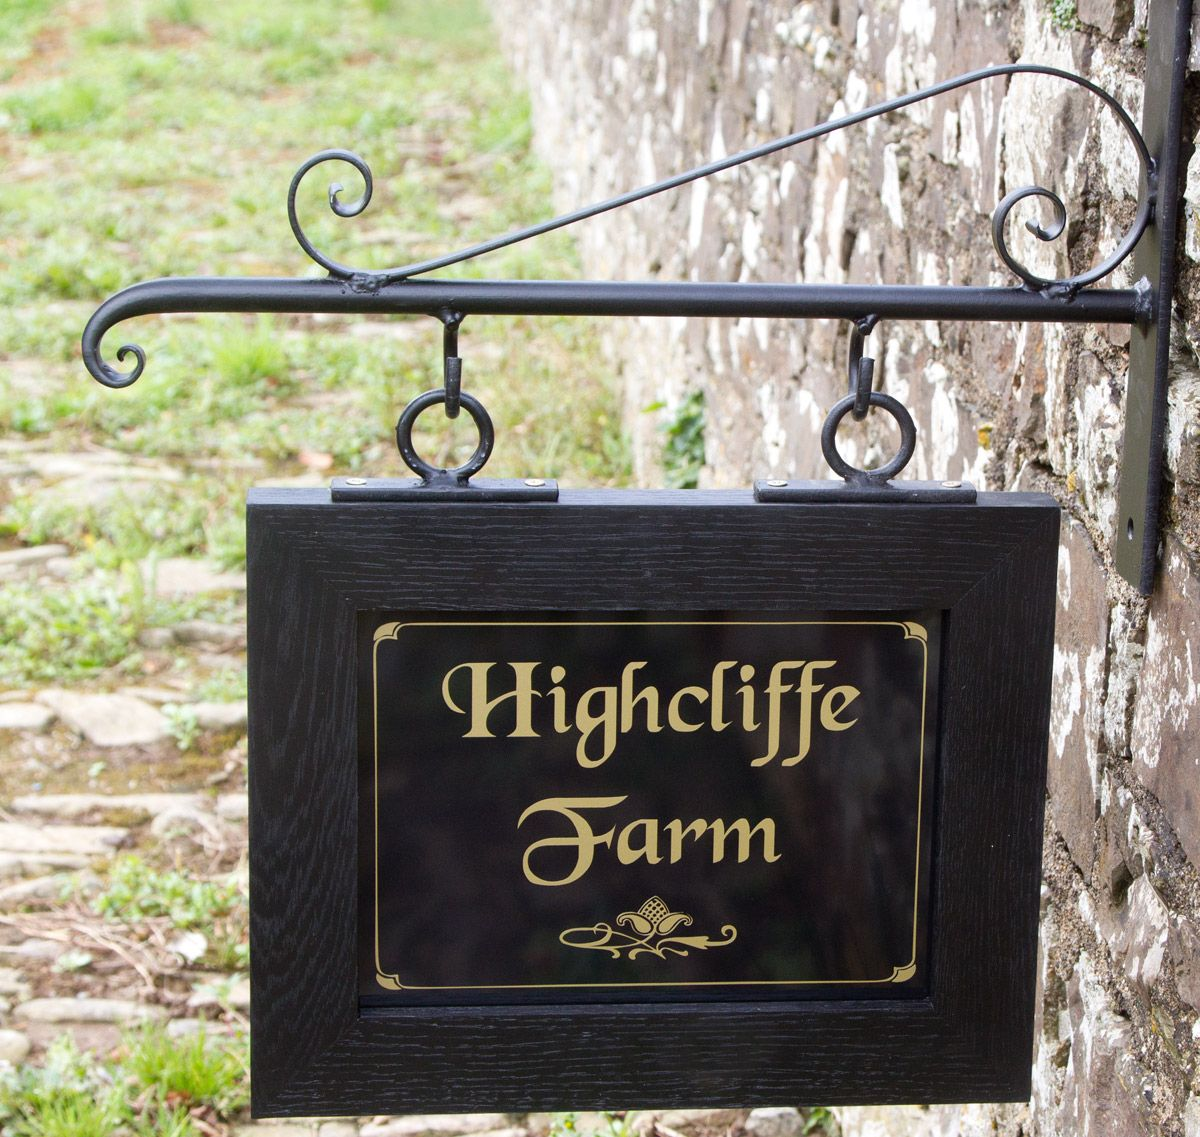 Hanging Oak Framed House Sign Wrought Iron Scroll Bracket With Extra Top Scroll Lettering Black Chancery In Gold Border B174 Home Signs Oak Frame House Shop Signs